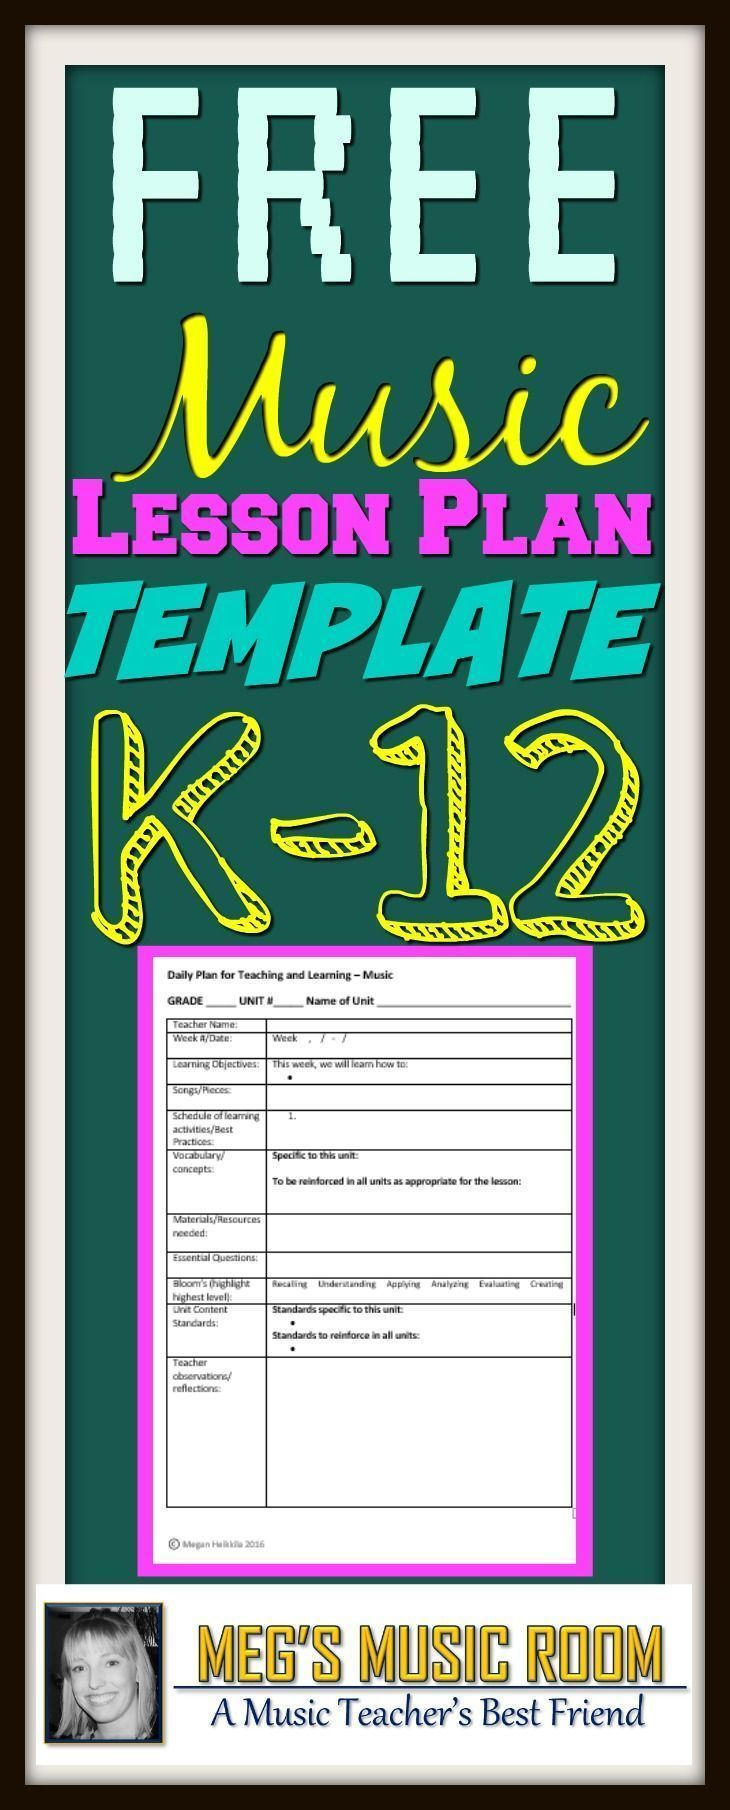 Music Lesson Plan Template Elementary Music Secondary Music Music Lesson Plans Music Lessons For Kids Elementary Music Elementary music lesson plan template